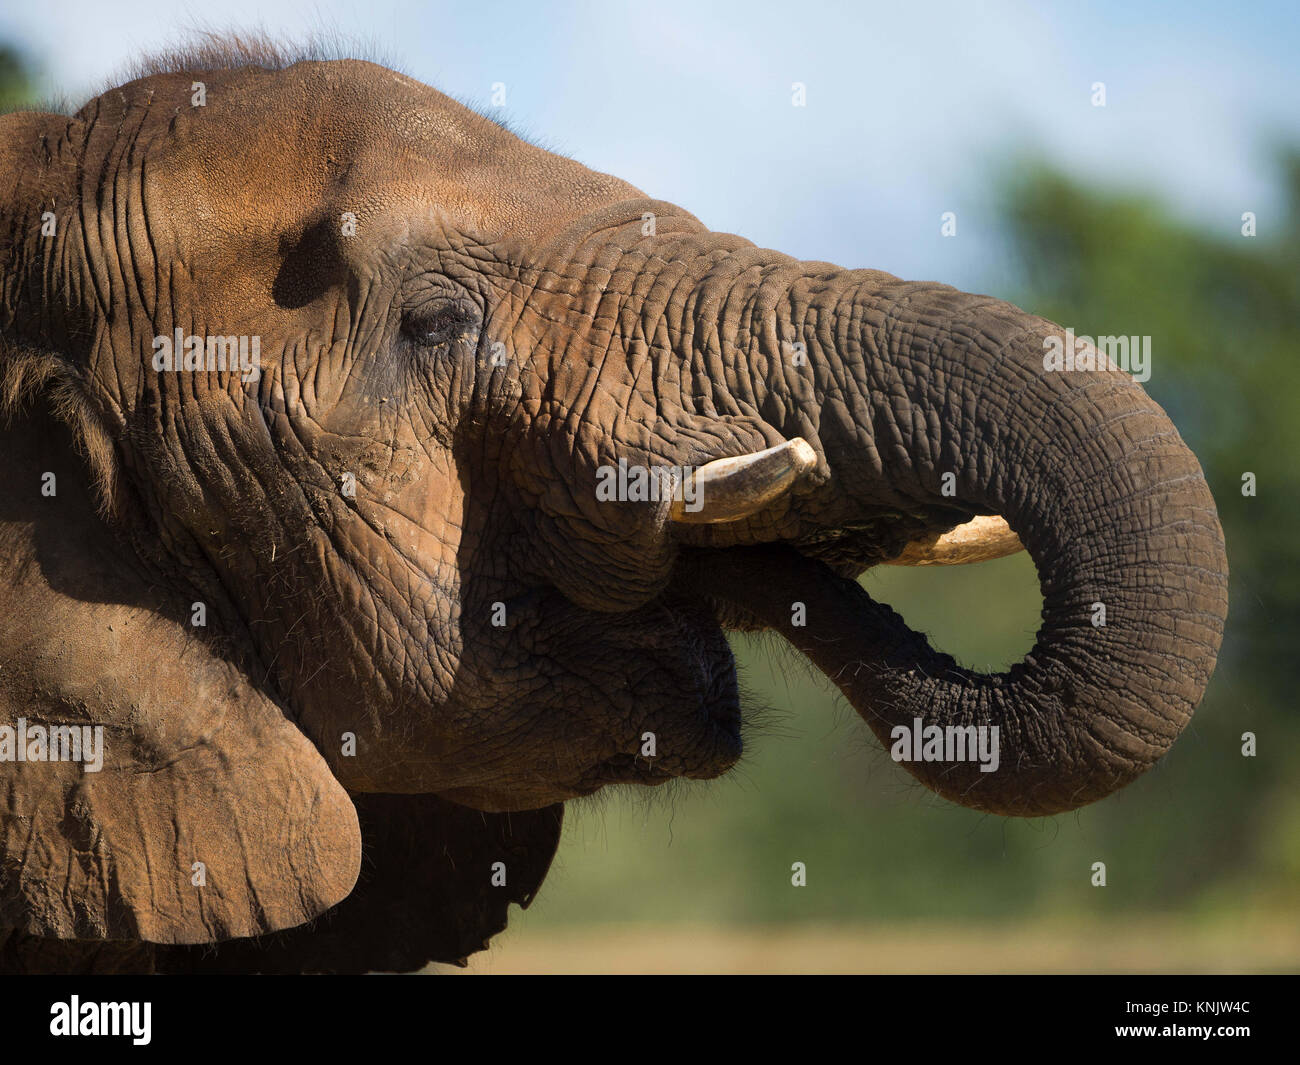 Miami, Forida, USA. 9th Dec, 2013. An African bush elephant. Elephants have several distinctive features, the most - Stock Image